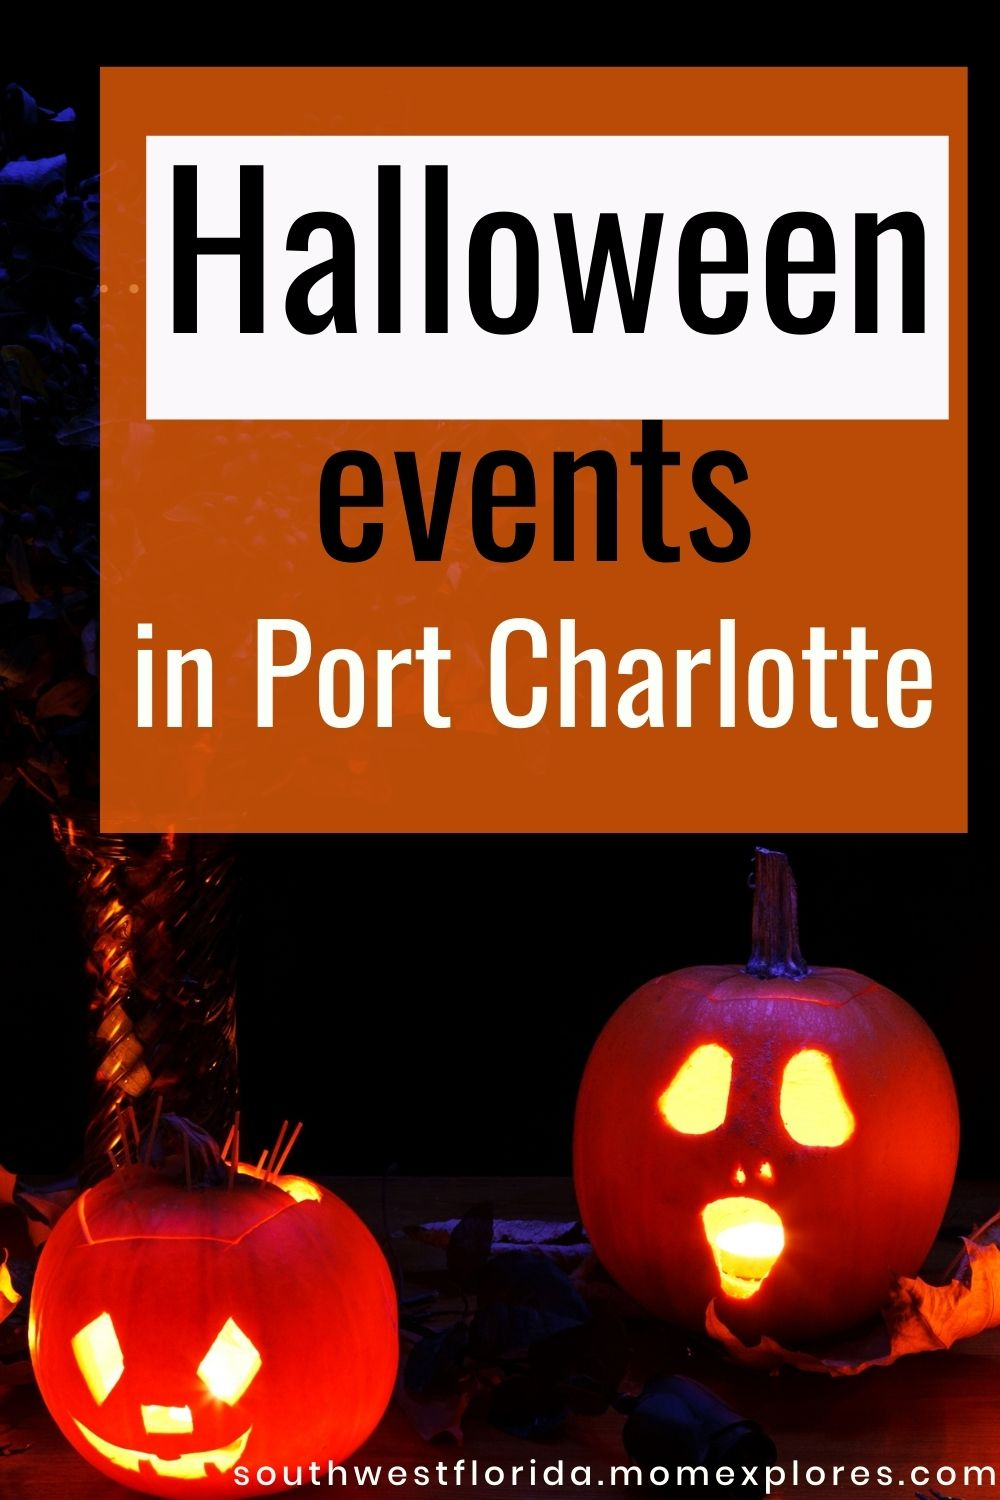 Halloween events in Port Charlotte